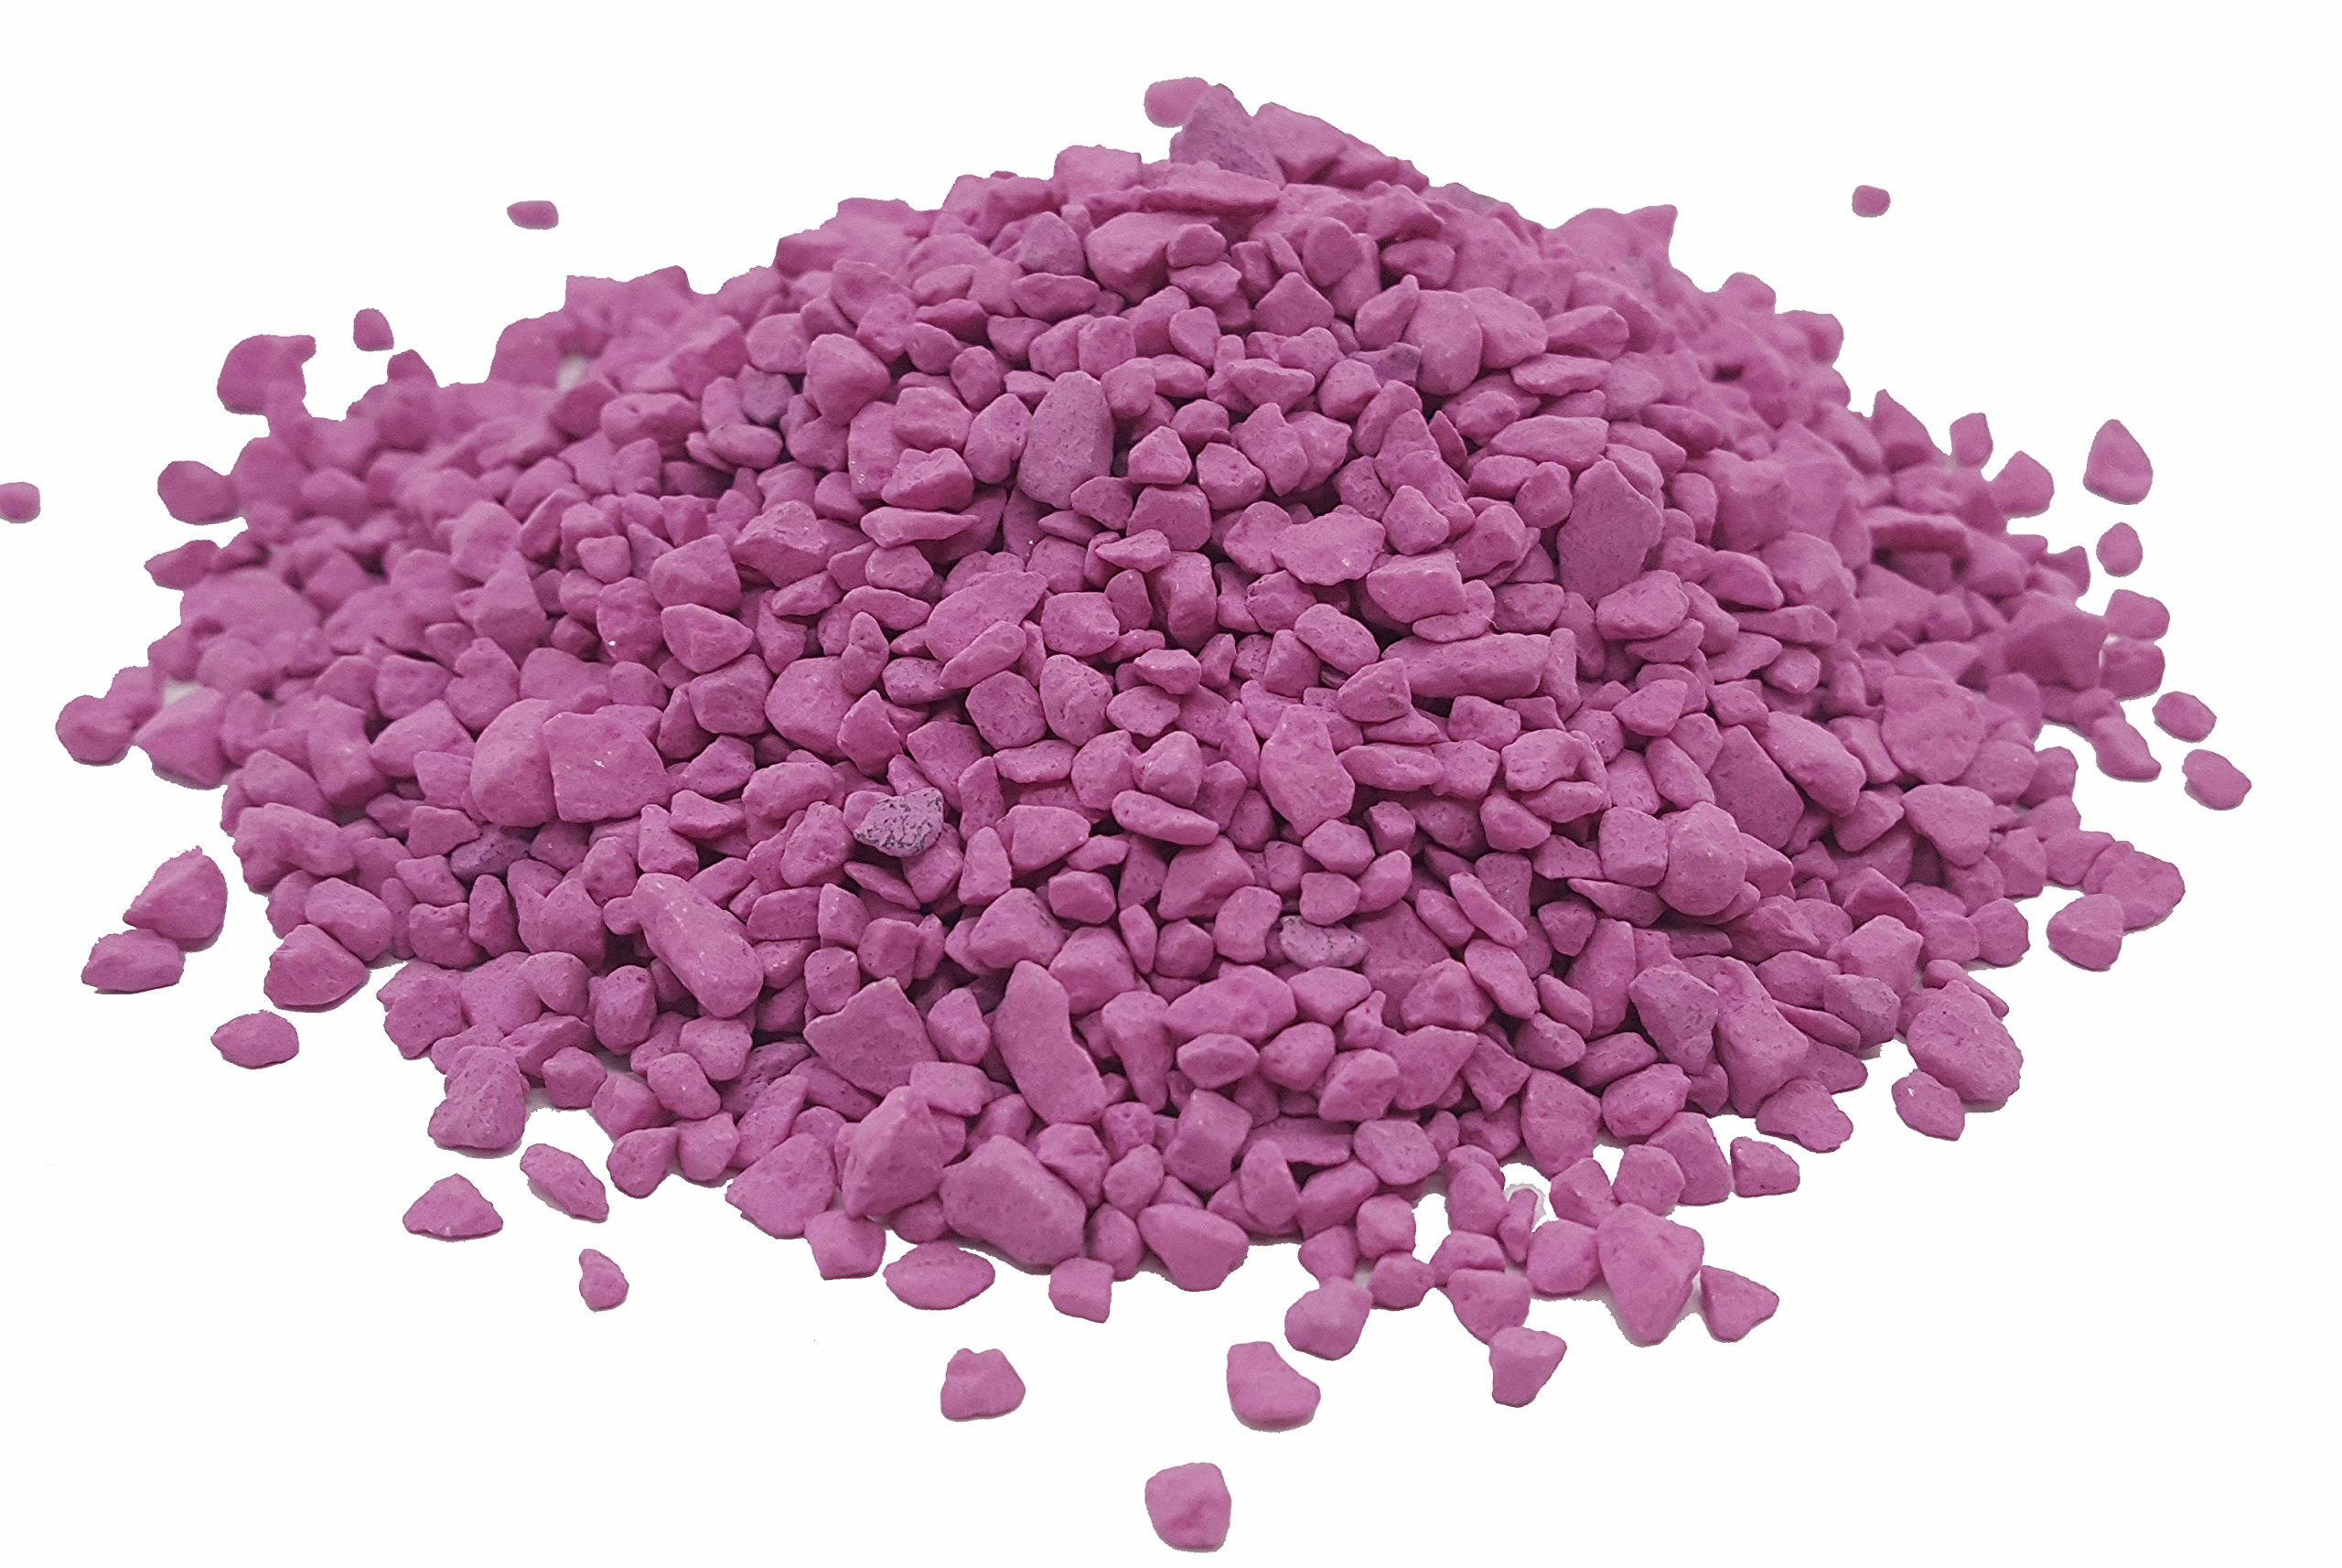 Taygum Eco-Friendly Colored Decorative Stones,, 2.2lb Bag 0.07''~0.2'' Thickness, for Landscaping, Gardening, Home-Decor, Garden Decorations, Play Grounds,Yard Decorations(Hot pink)